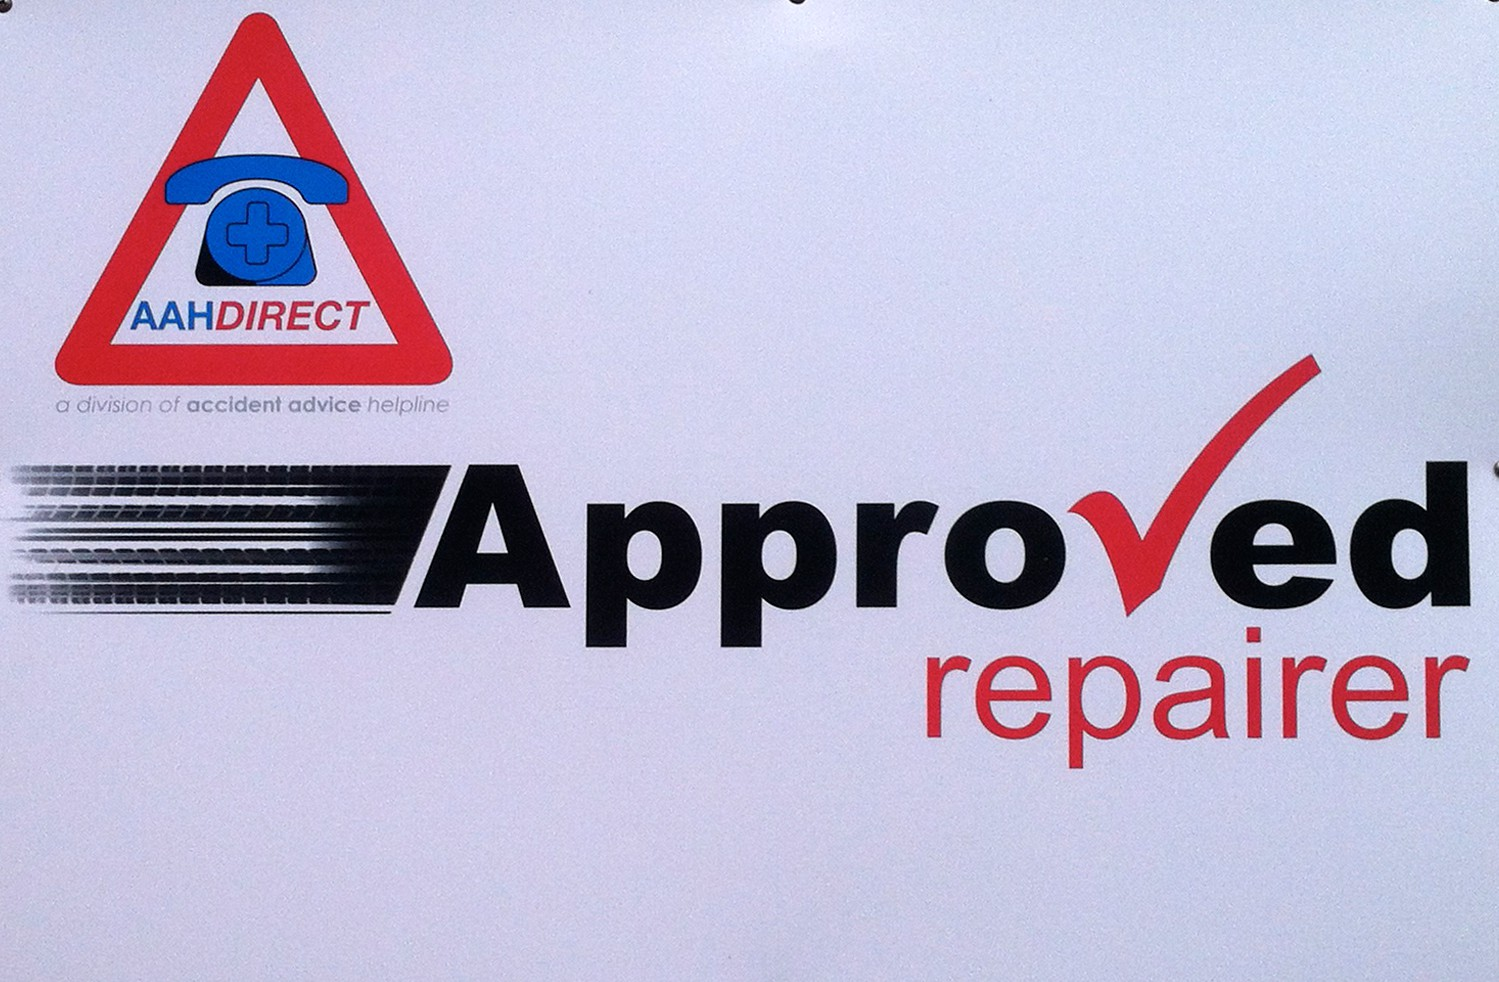 AAH Approved Repairer